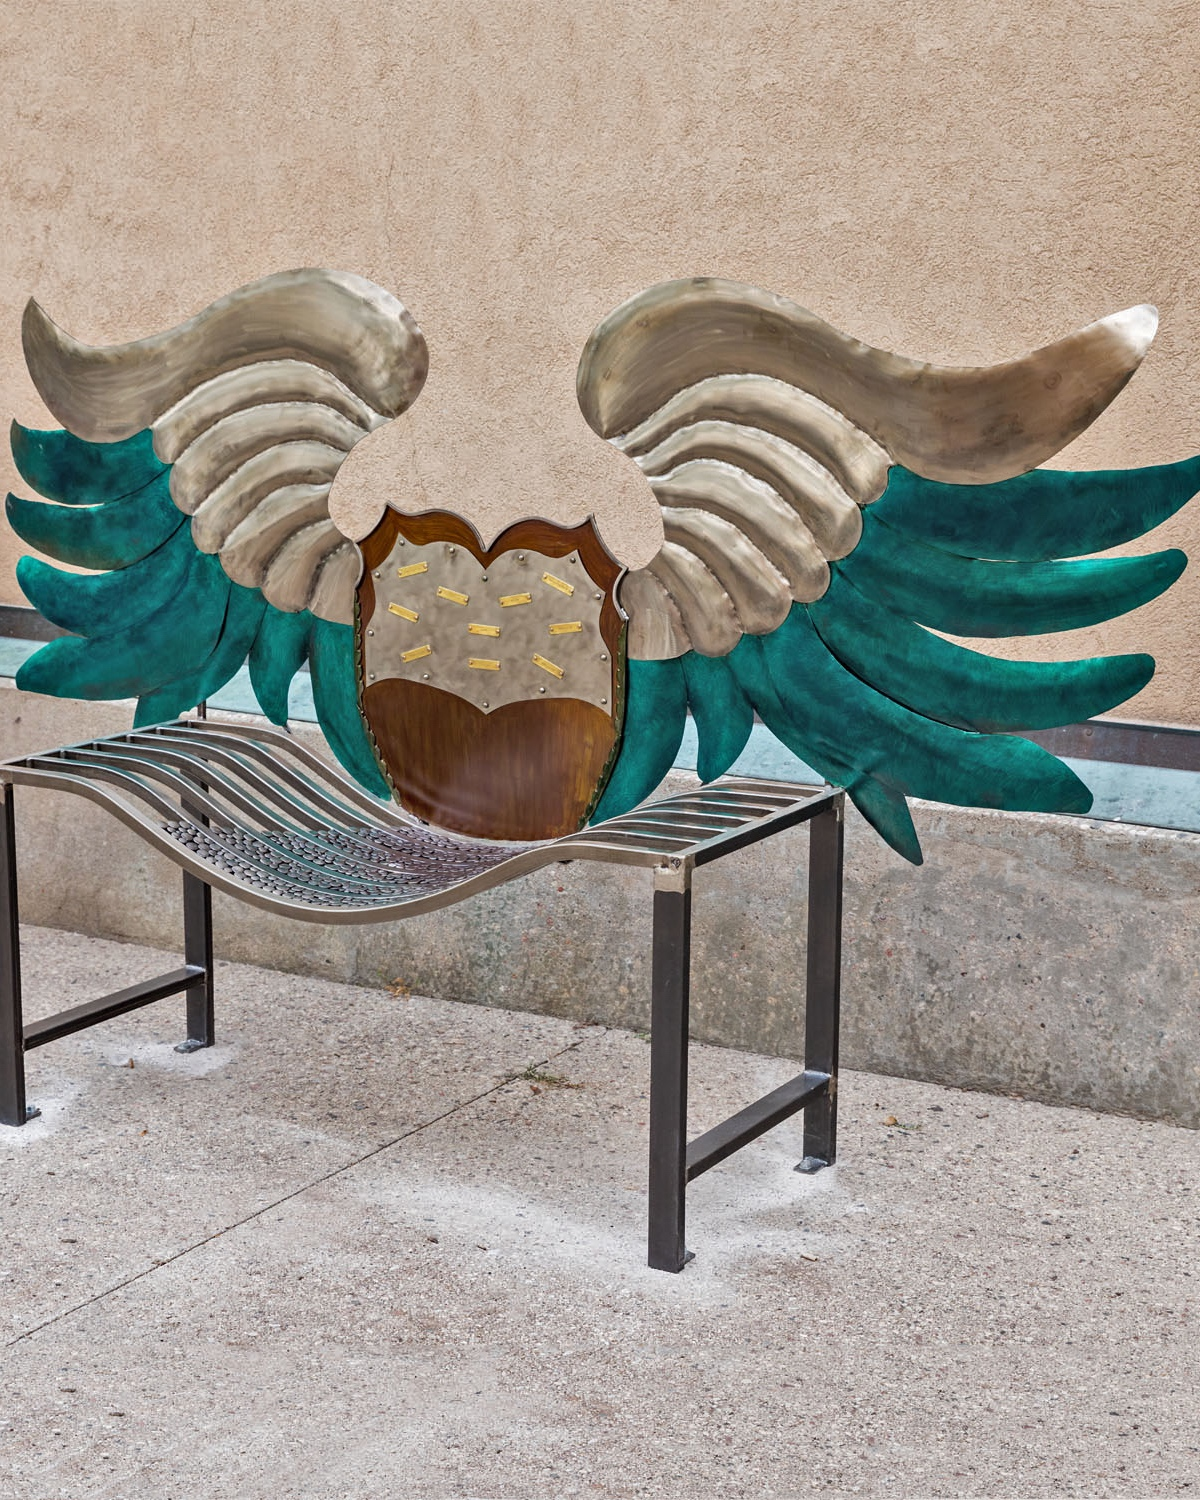 Wing Meditation Bench